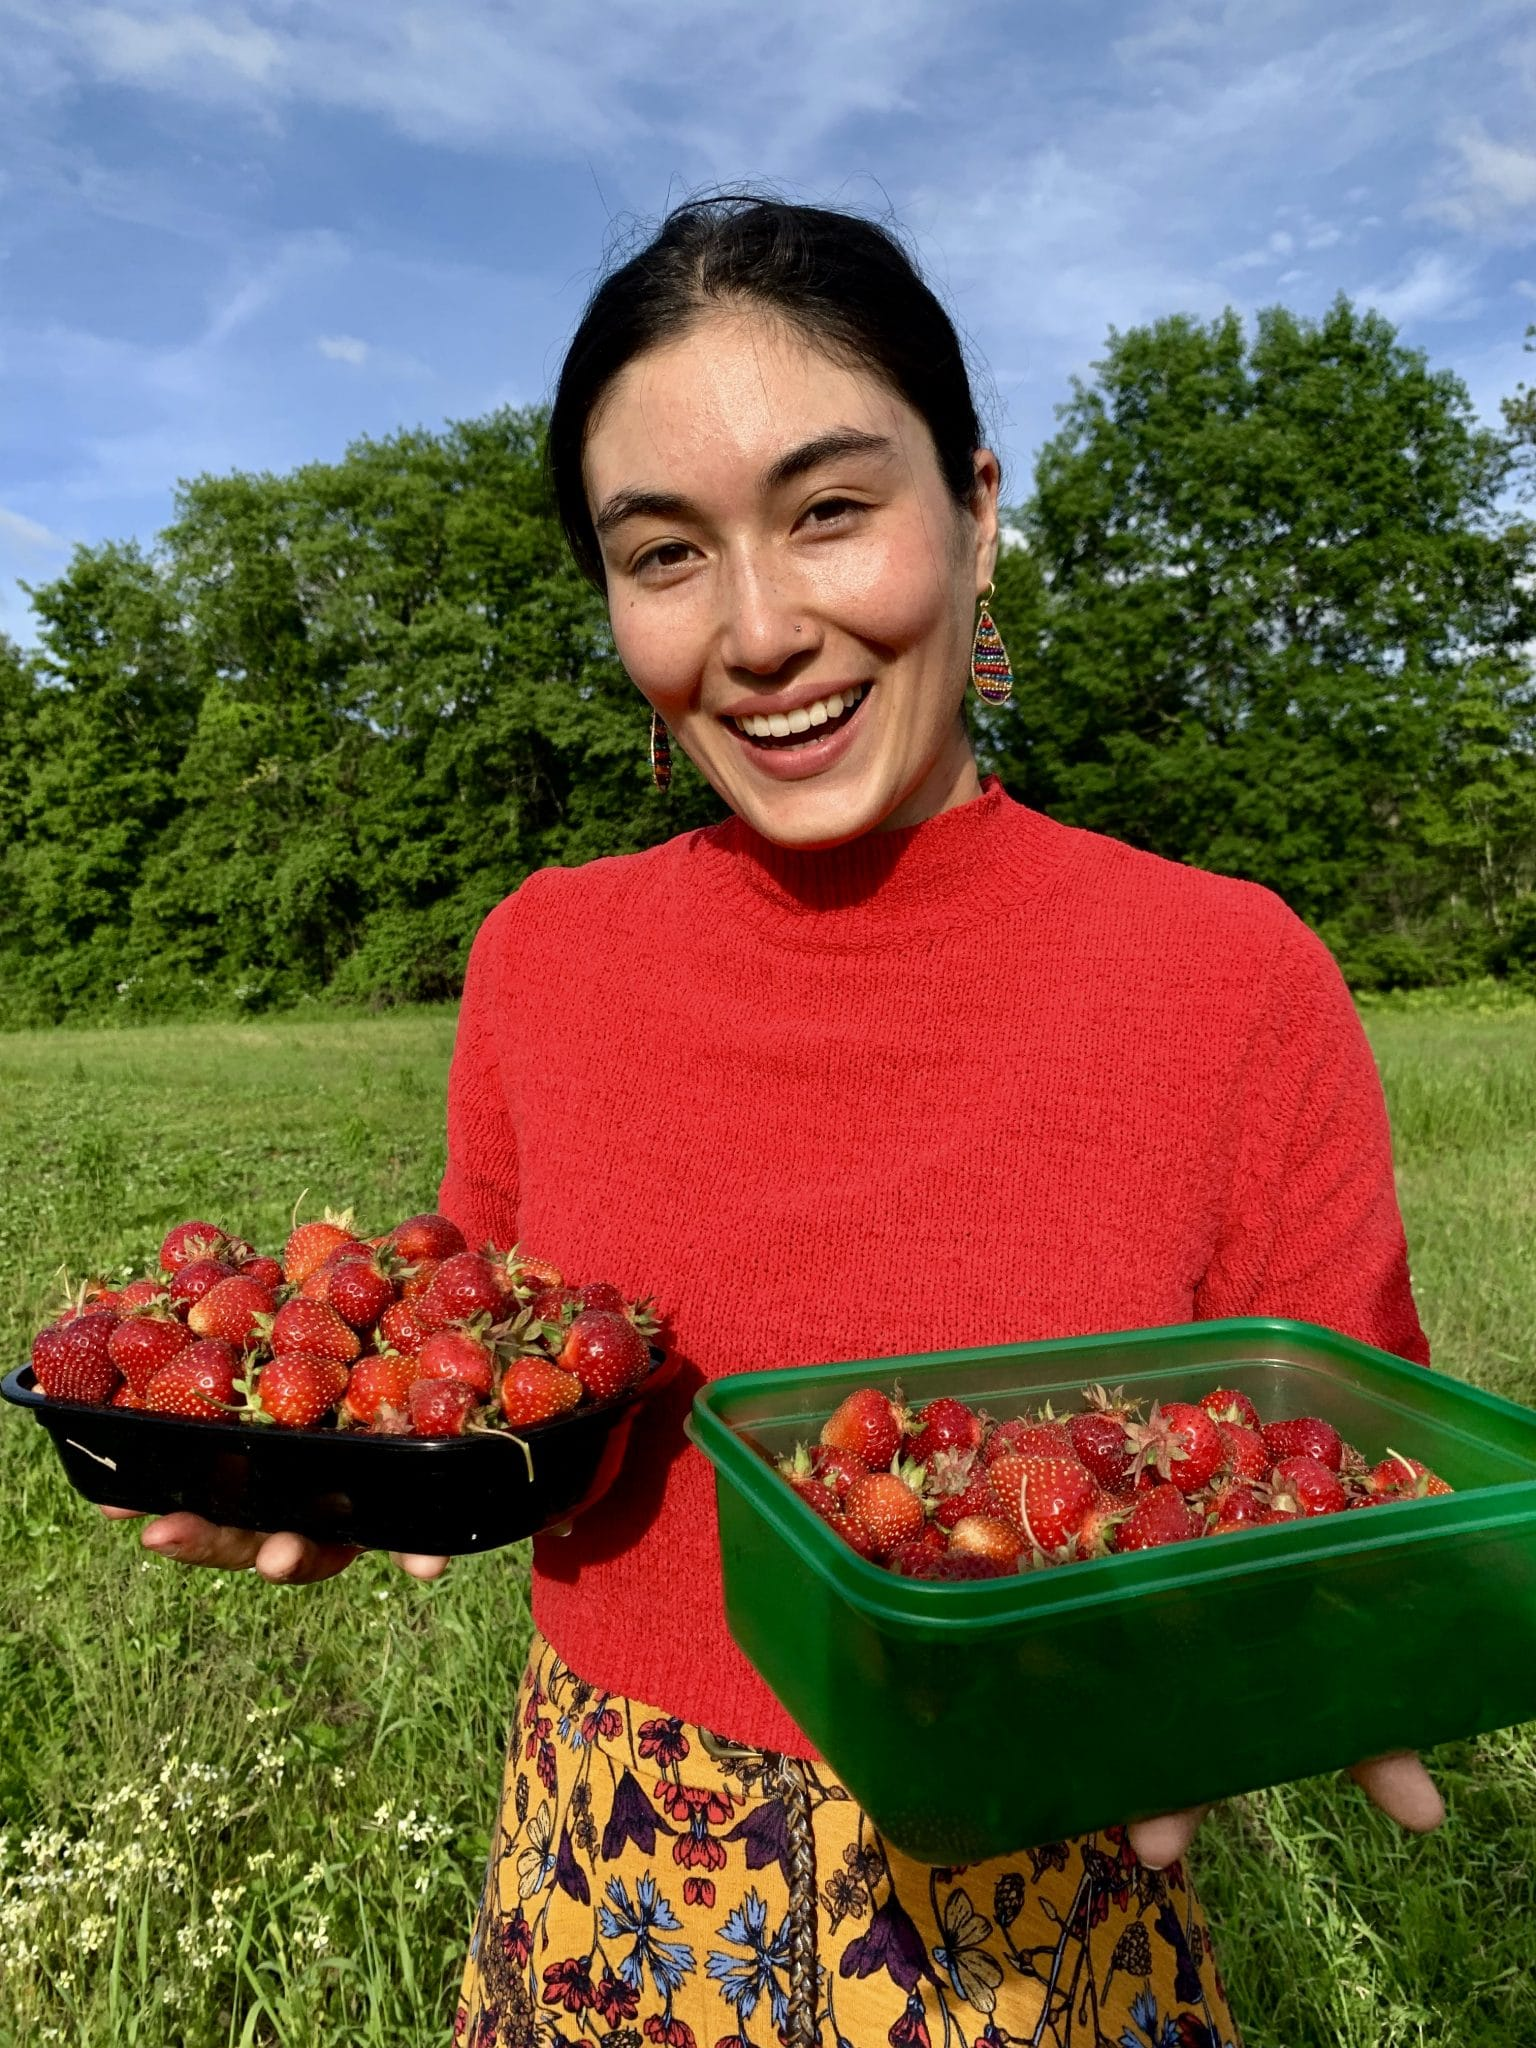 Yun Yun, an Off the Beaten Path Food Tour guide, wears a red shirt while holding strawberries in a field.